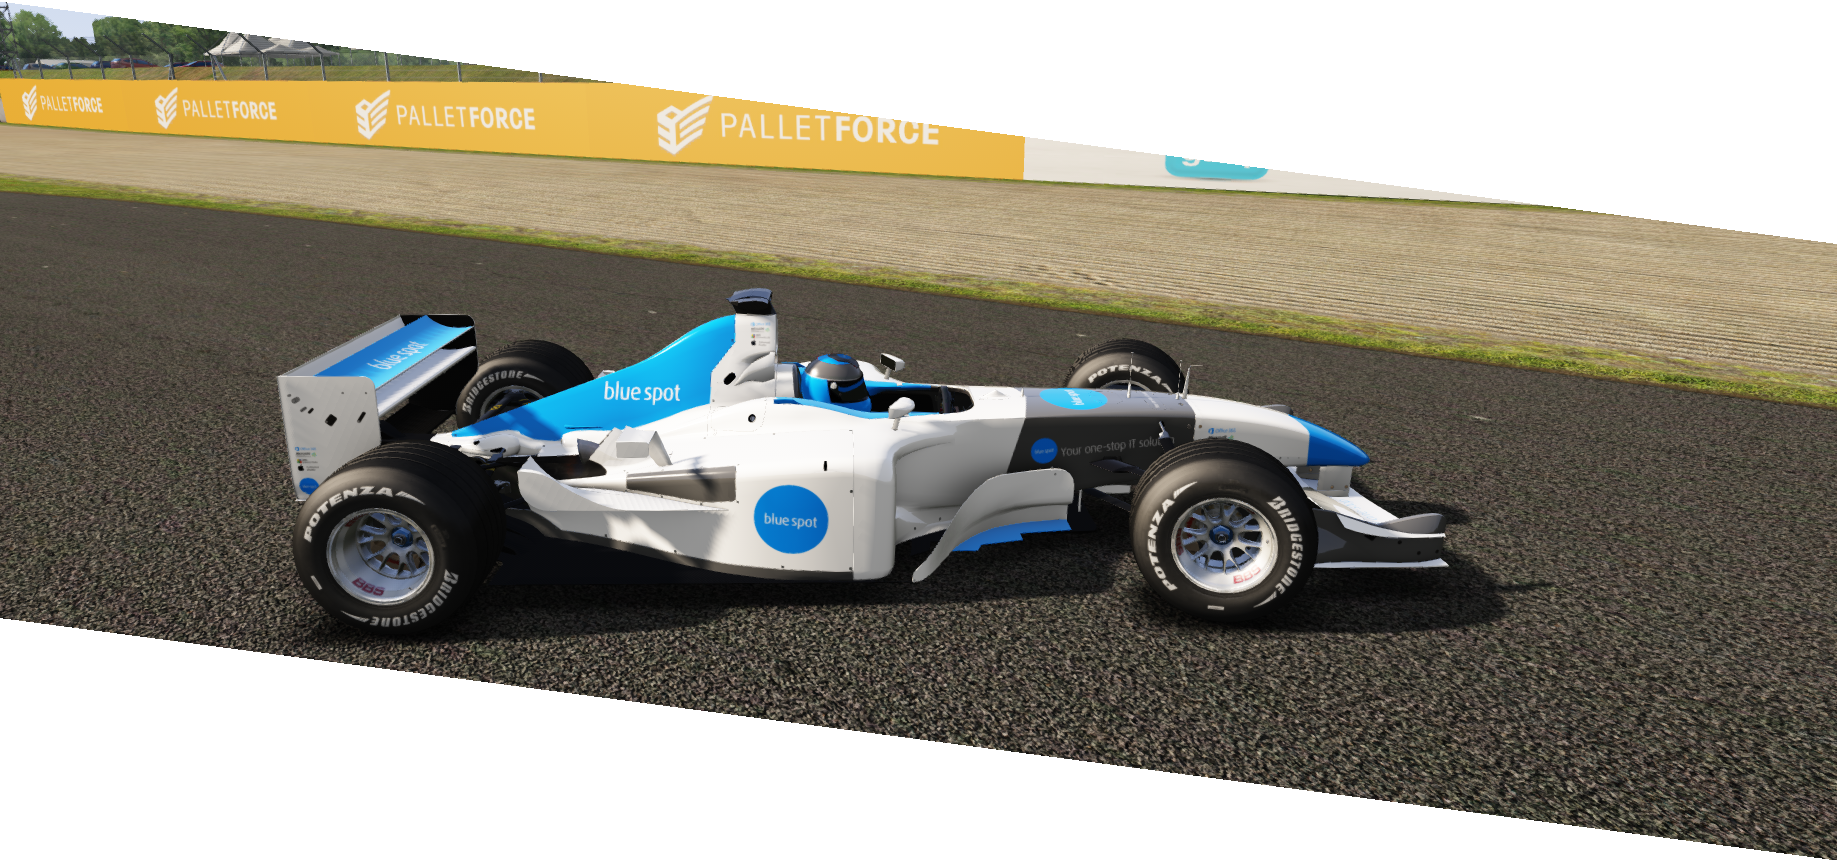 f1 car in game branding